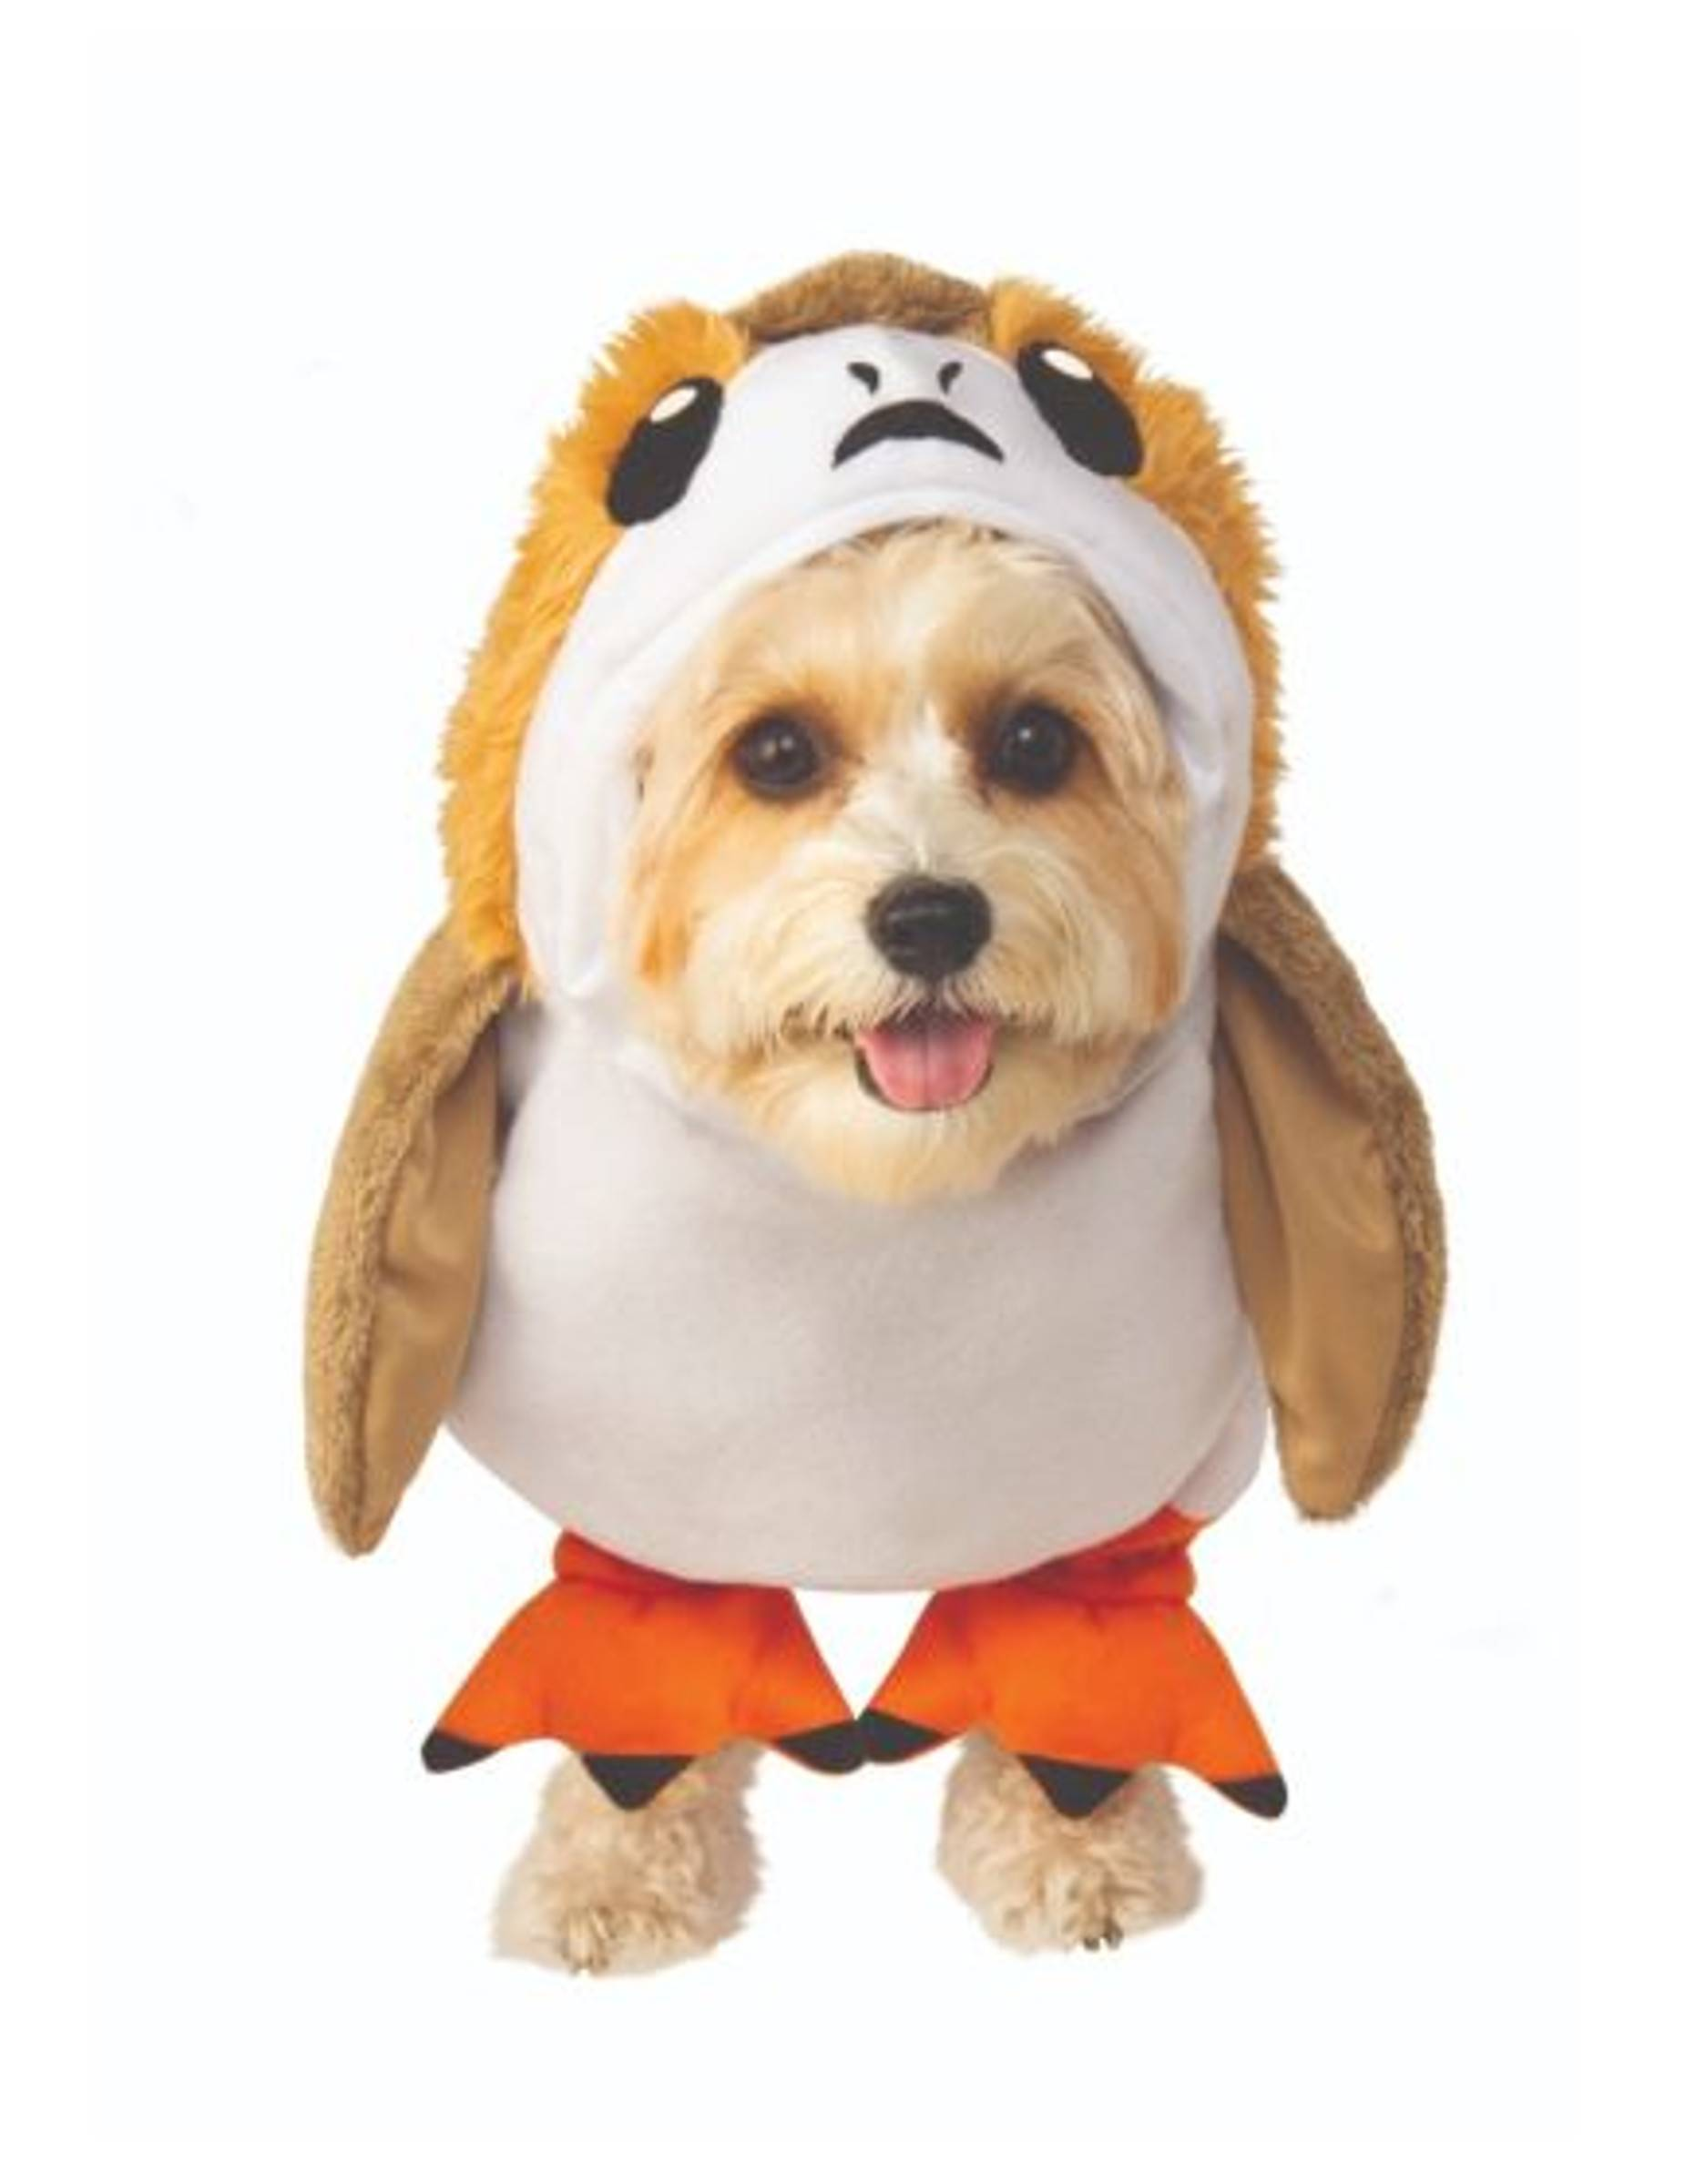 Vegaoo Costume Porg The Last Jedi Star Wars per cane - XL